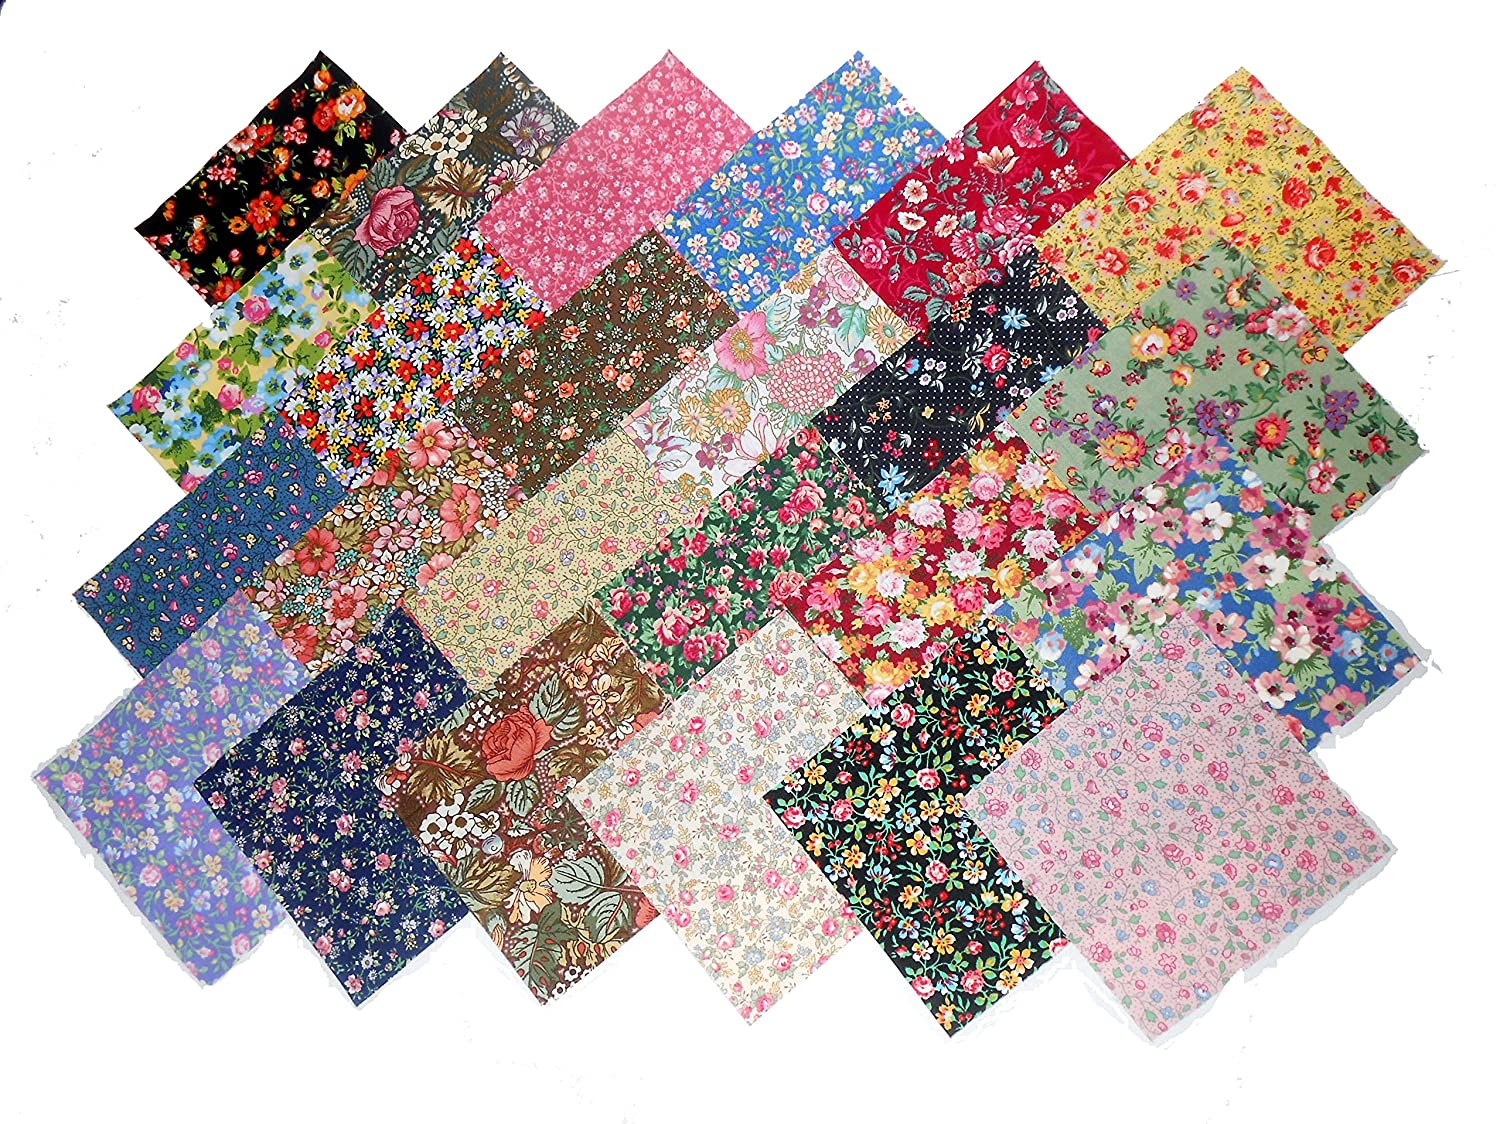 48 10 Layer Cake NEW Among the Flowers Quilt Fabric Squares- 48 DIFFERENT PRINTS - 1 OF EACH MDG